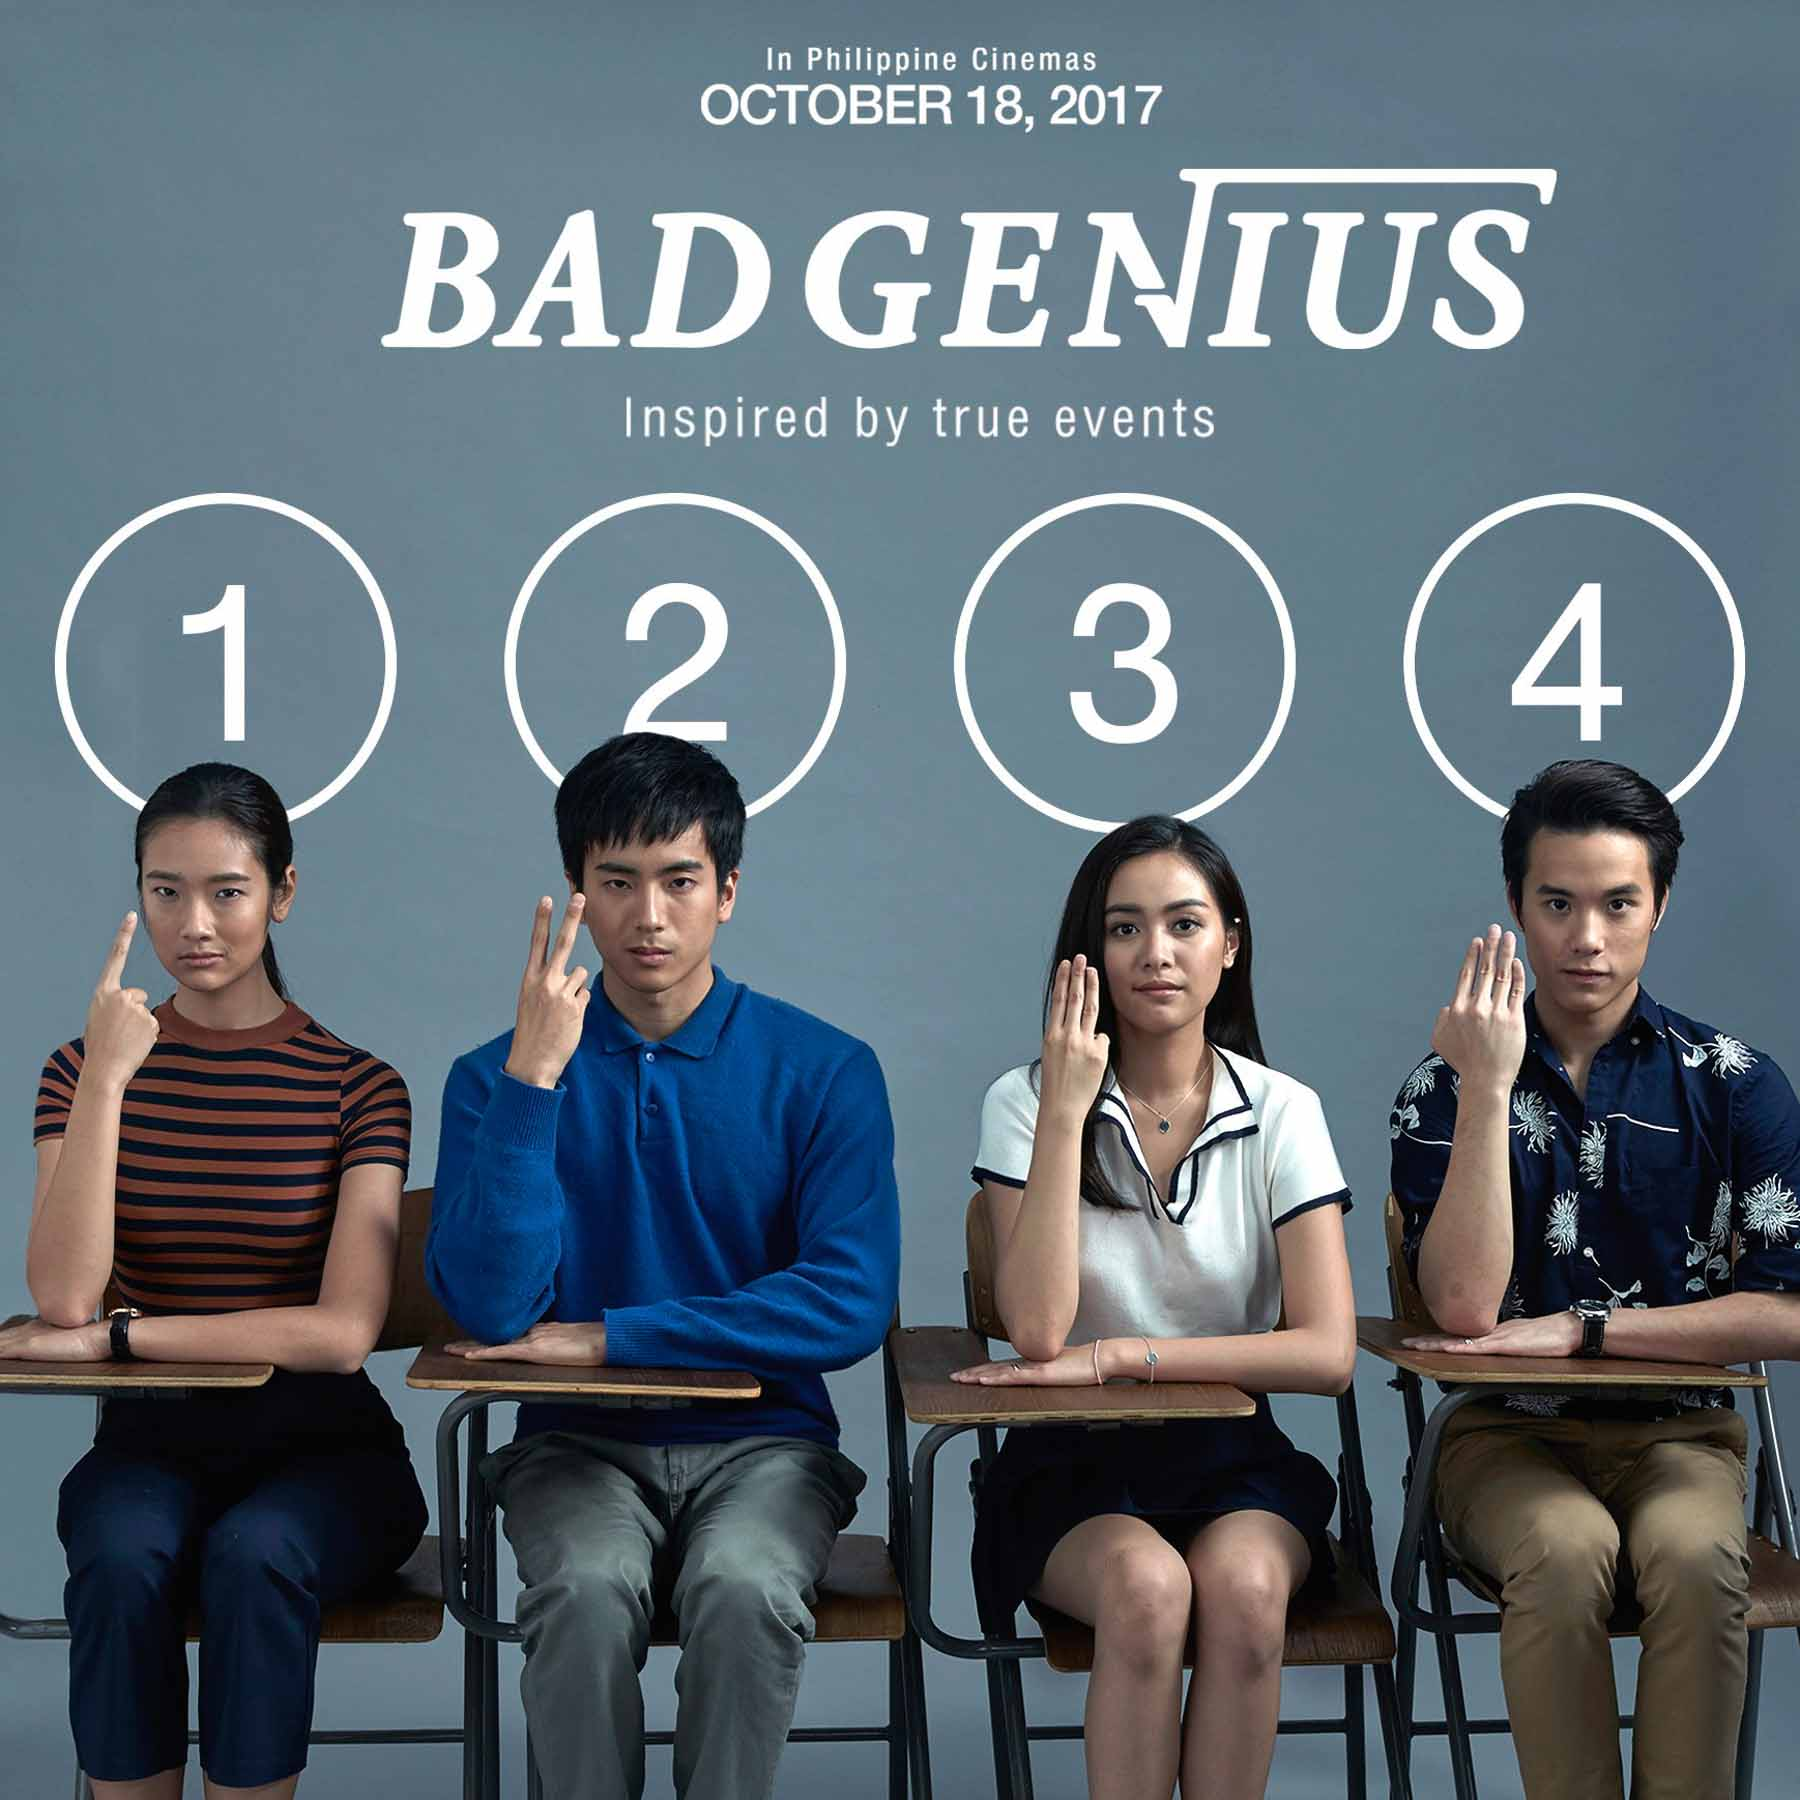 https://i0.wp.com/www.nognoginthecity.com/wp-content/uploads/2017/10/BAD-GENIUS-official-poster-with-Manila-date.jpg